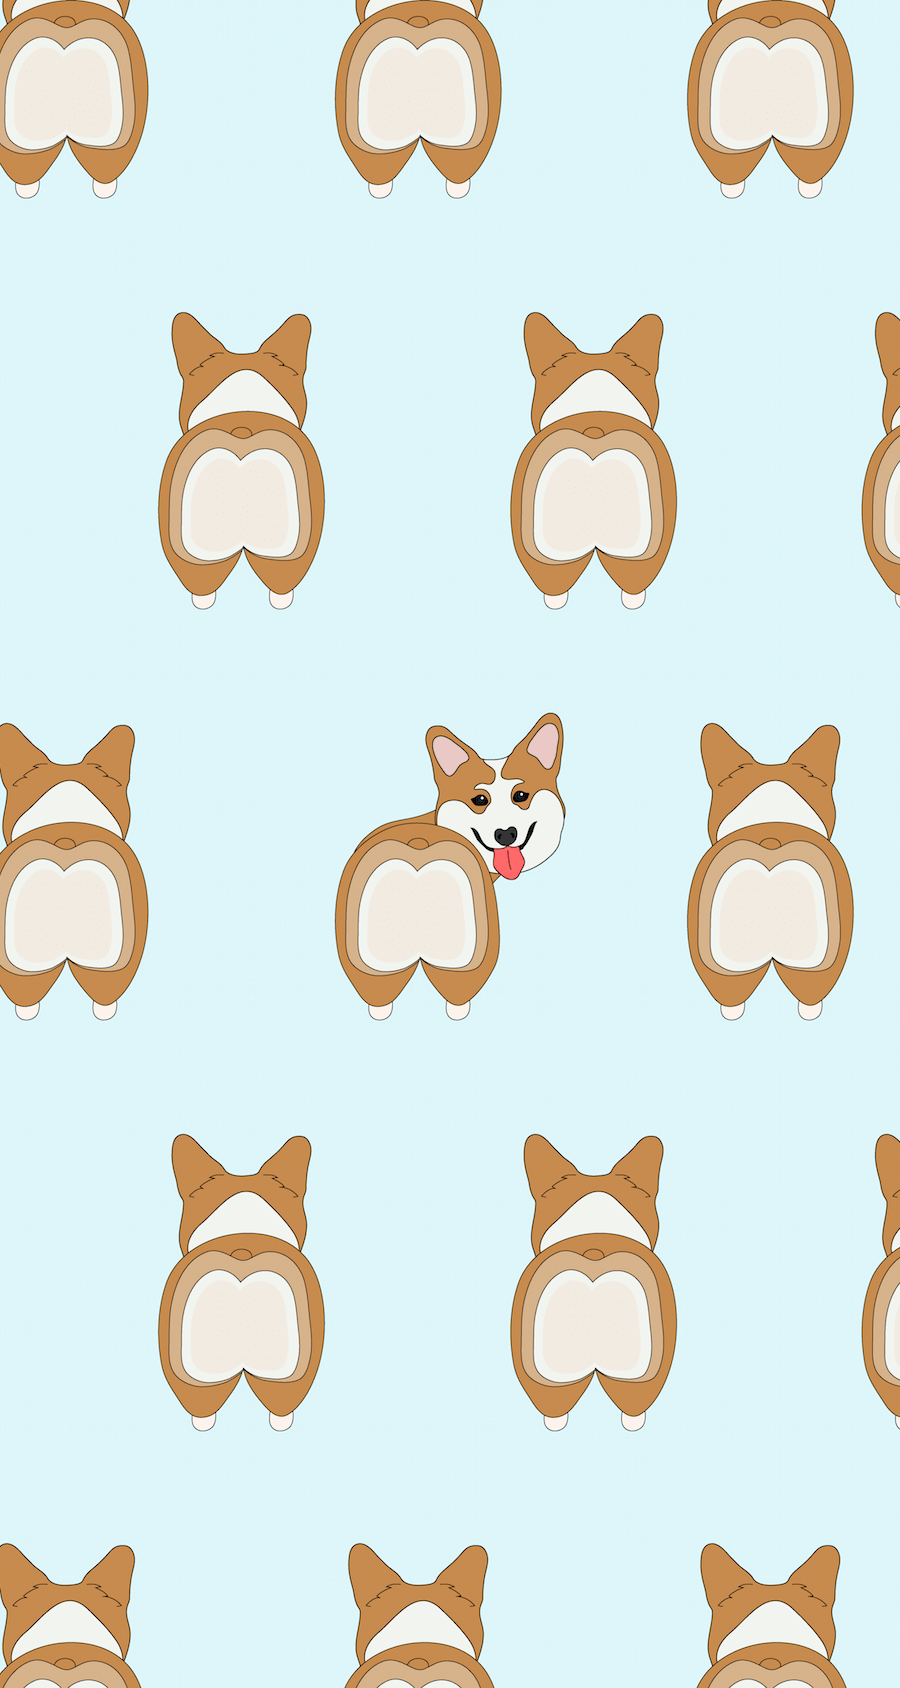 freebie - dachshunds and corgis wallpaper | wallpapers | pinterest